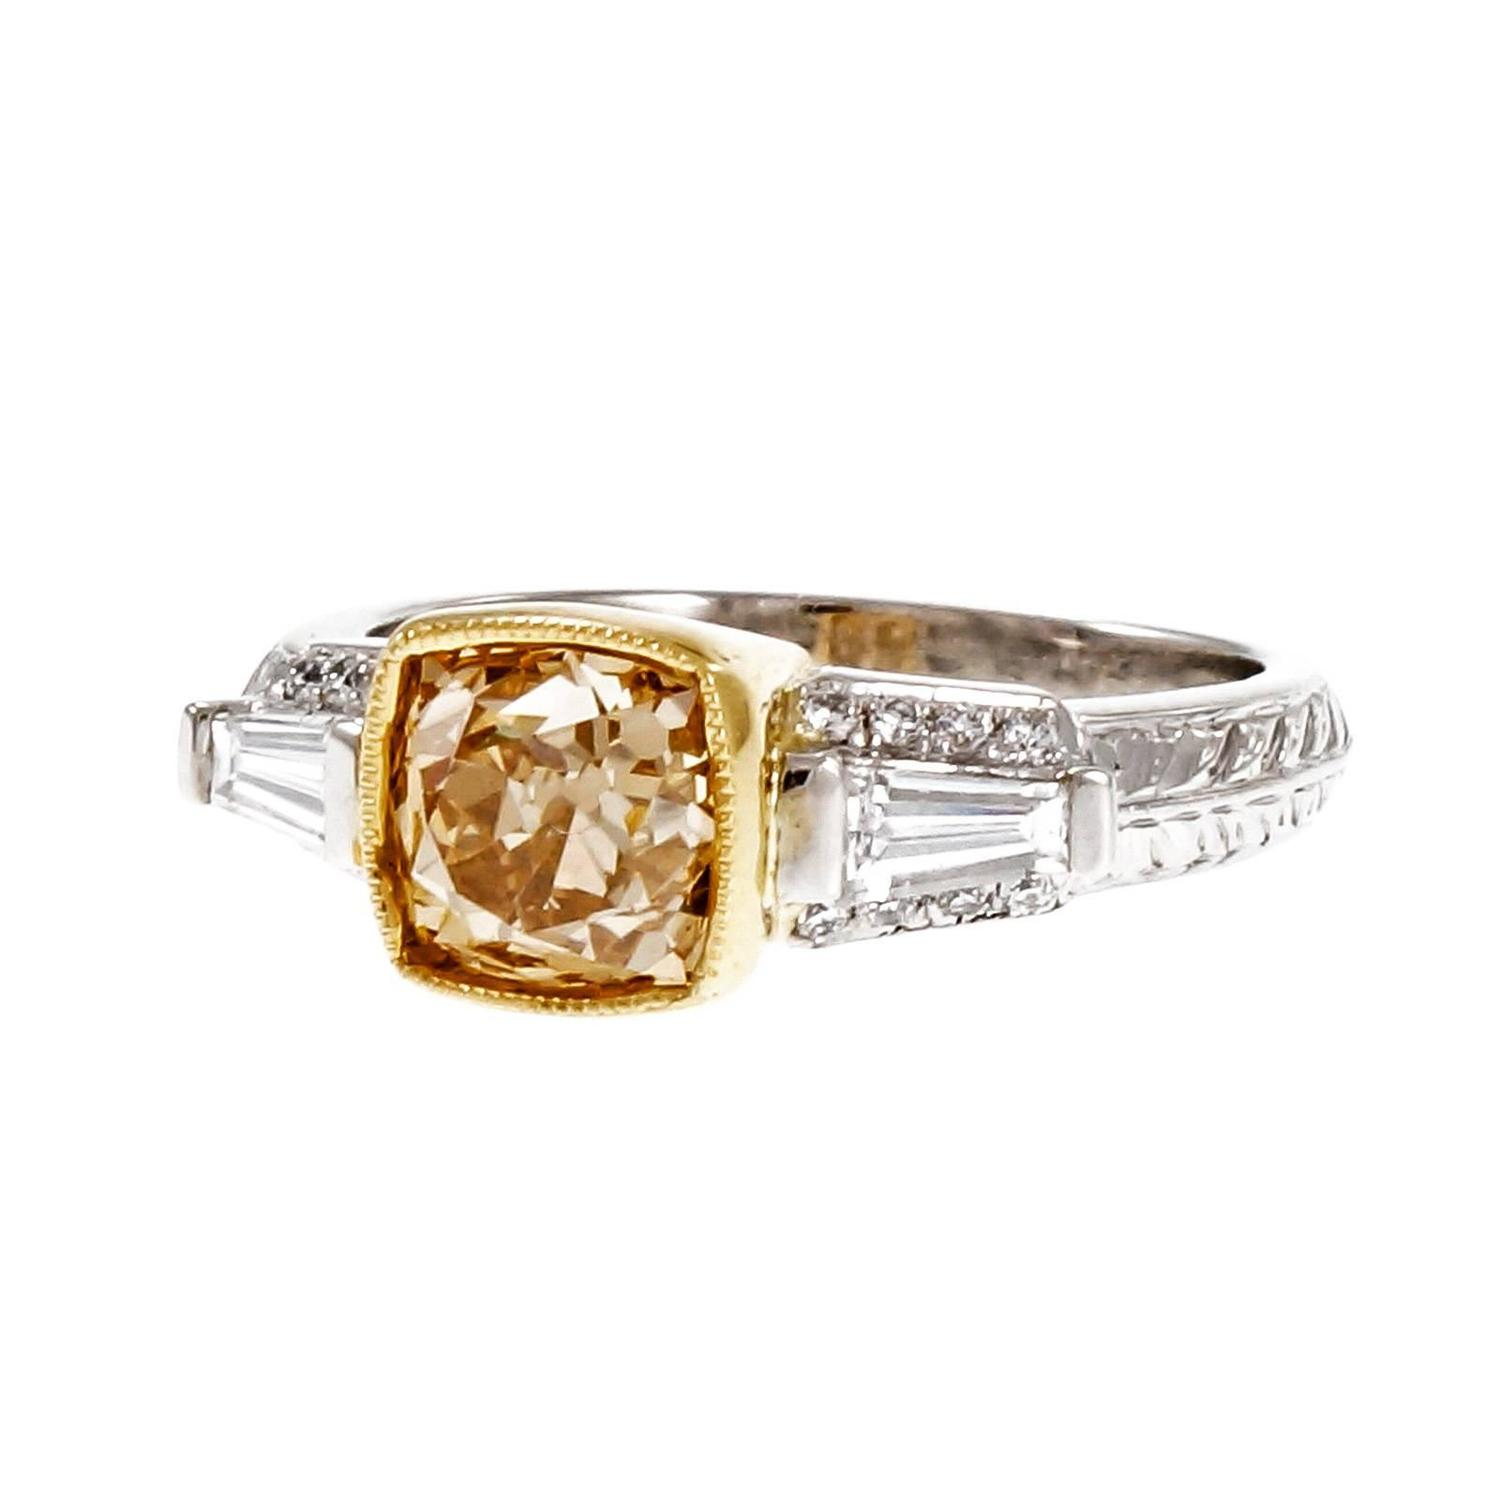 gold vs platinum Charles koll jewelers offers custom engagement rings in gold and platinum find out the difference from san diego's custom jewelry experts.